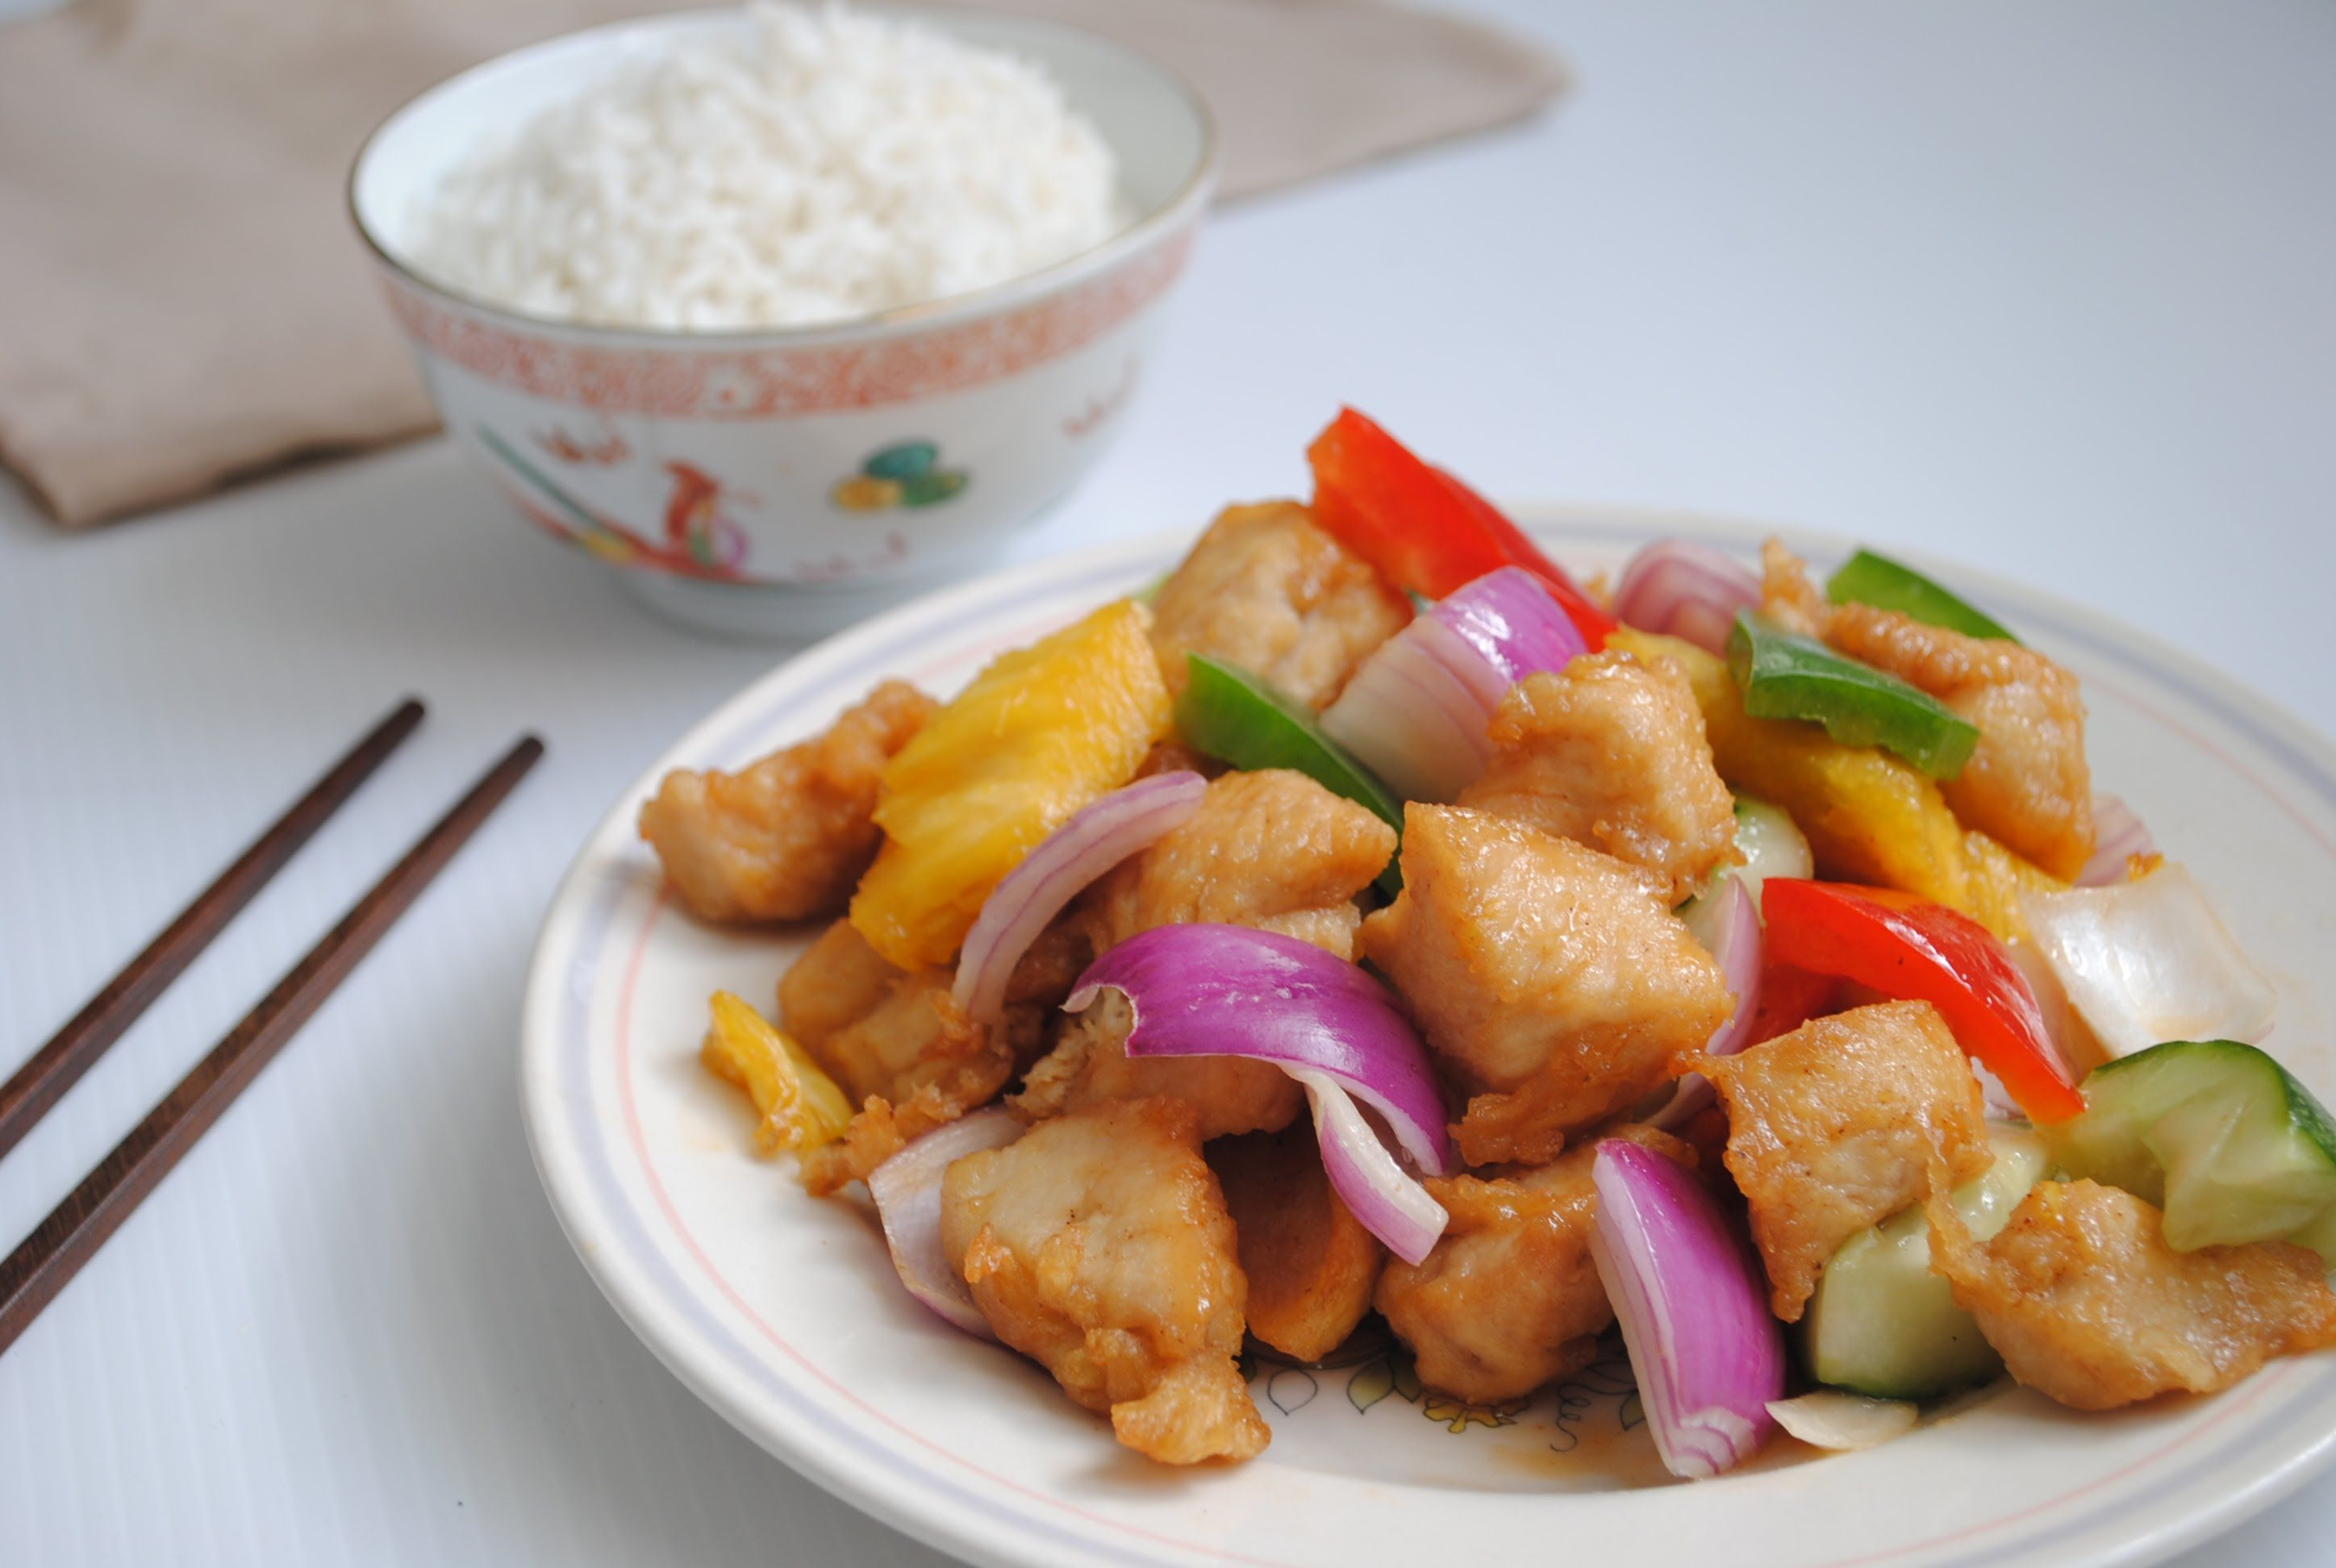 Sweet and sour chicken easy chinese recipe want to impress your sweet and sour chicken easy chinese recipe want to impress your friends and family members forumfinder Choice Image